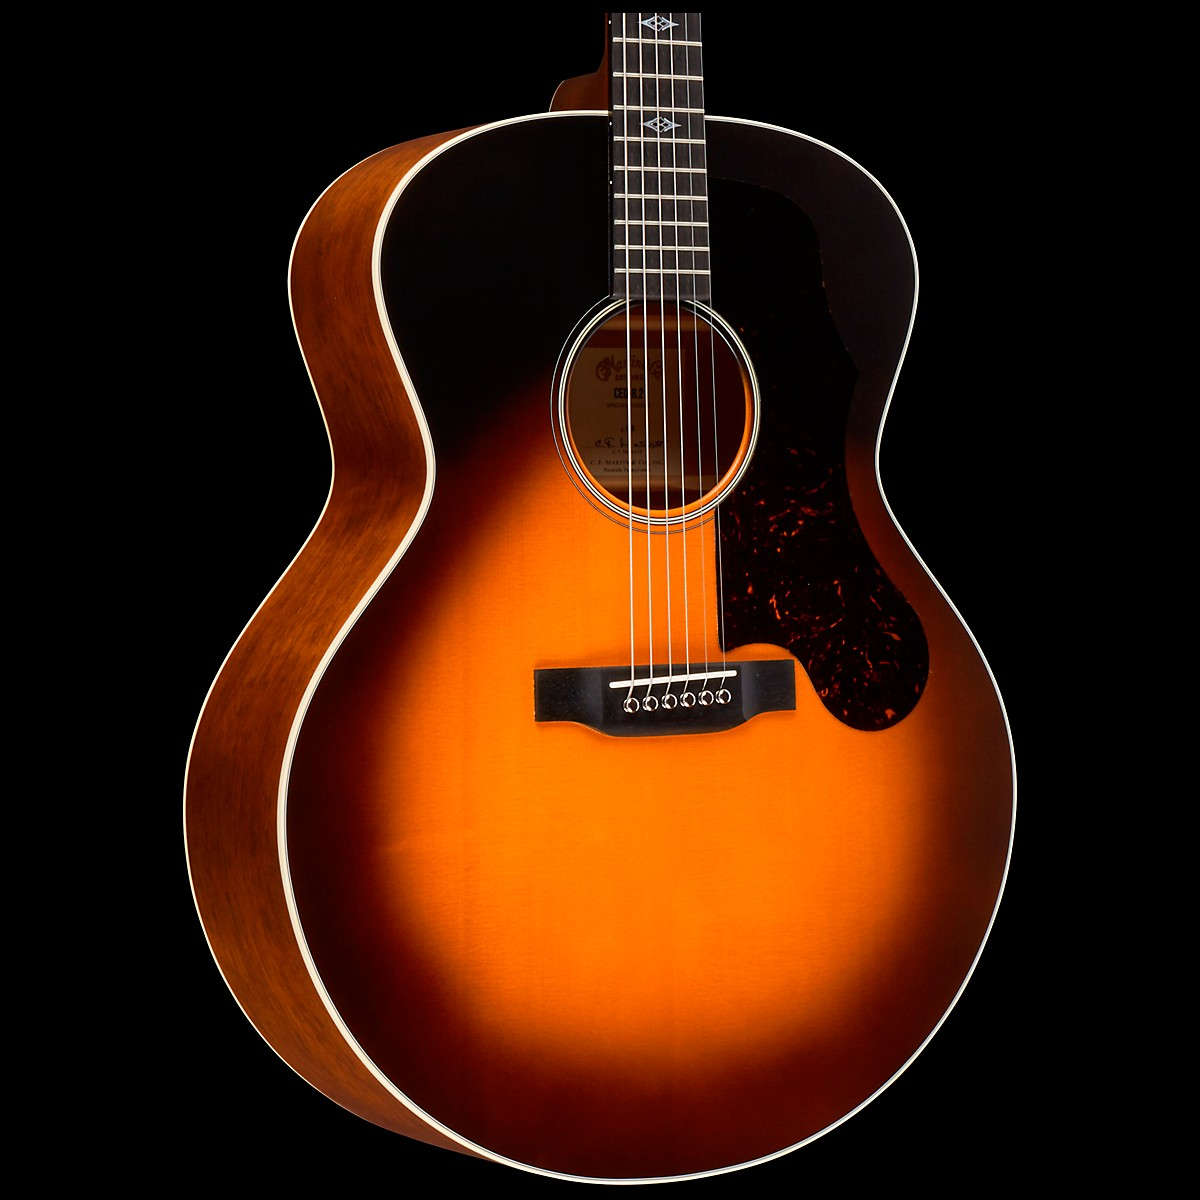 Martin CEO 8.2 Acoustic Guitar